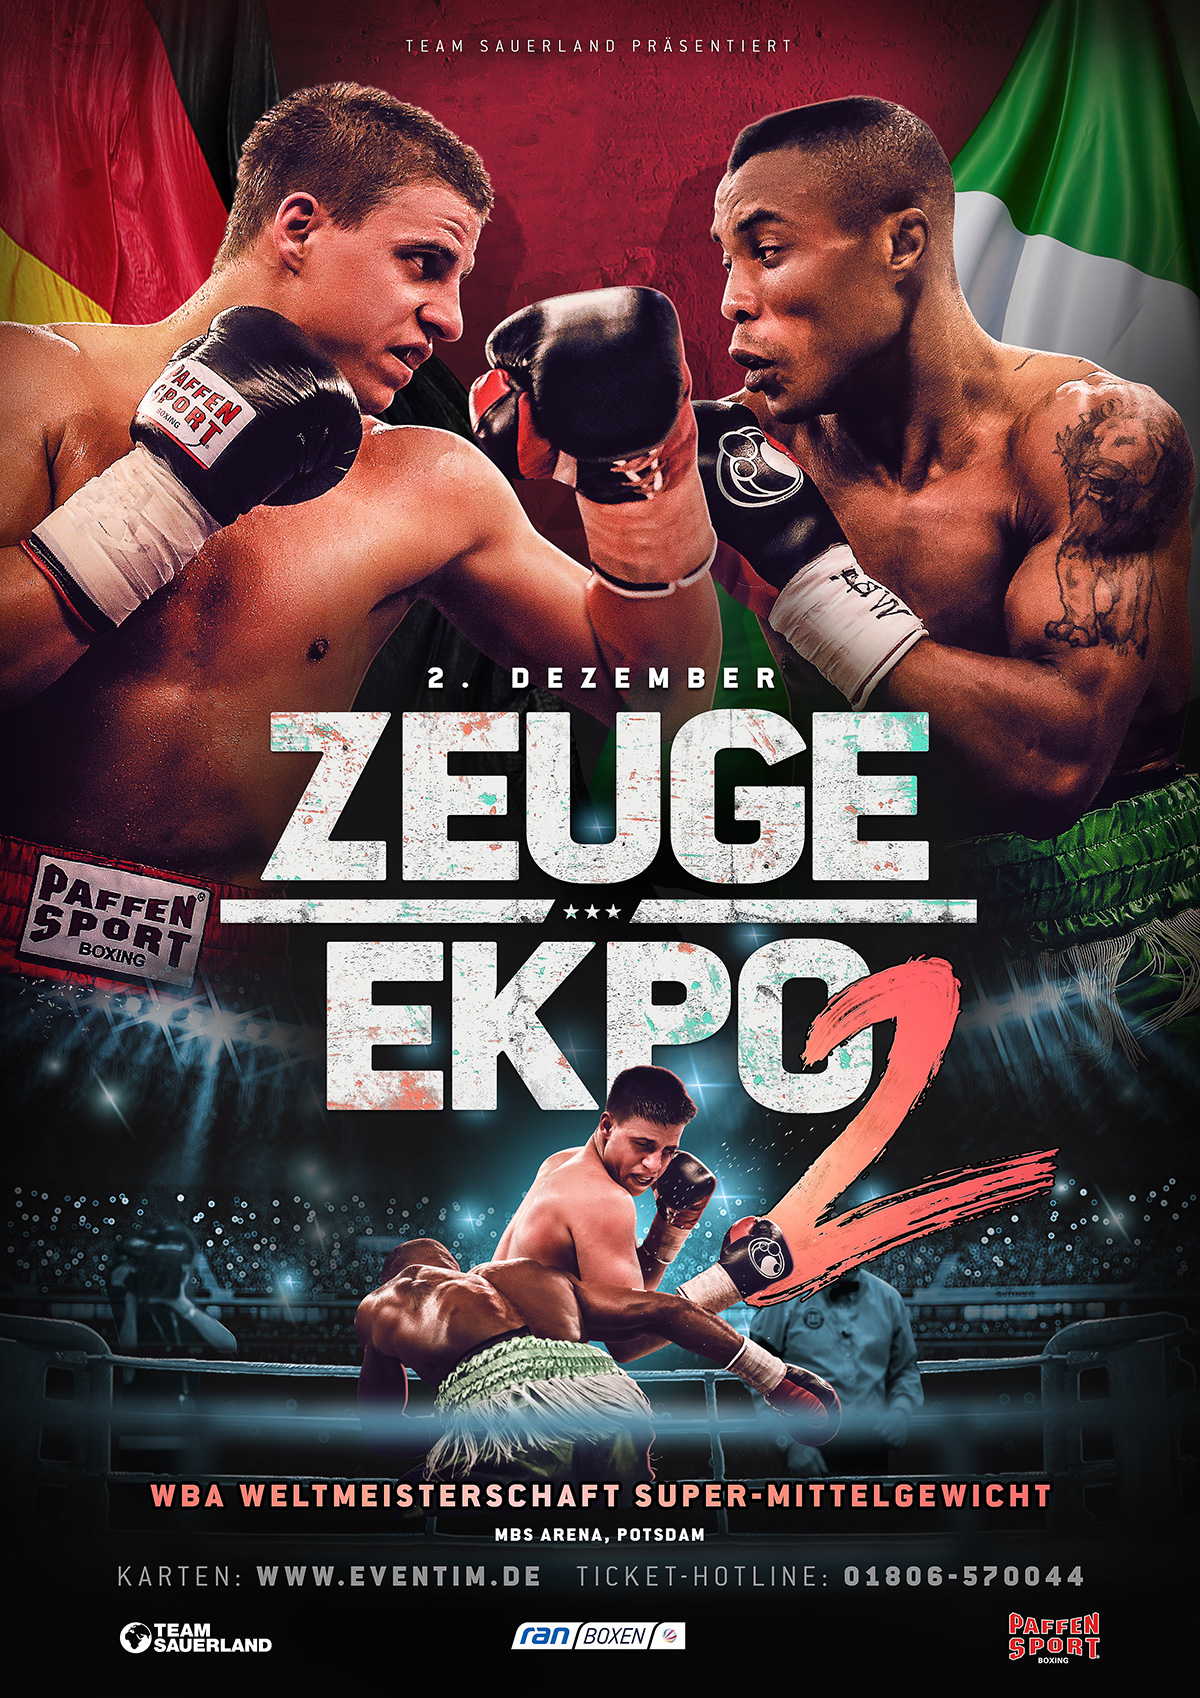 poster for a boxing fight in Germany featuring Tyron Zeuge and Isaac Ekpo